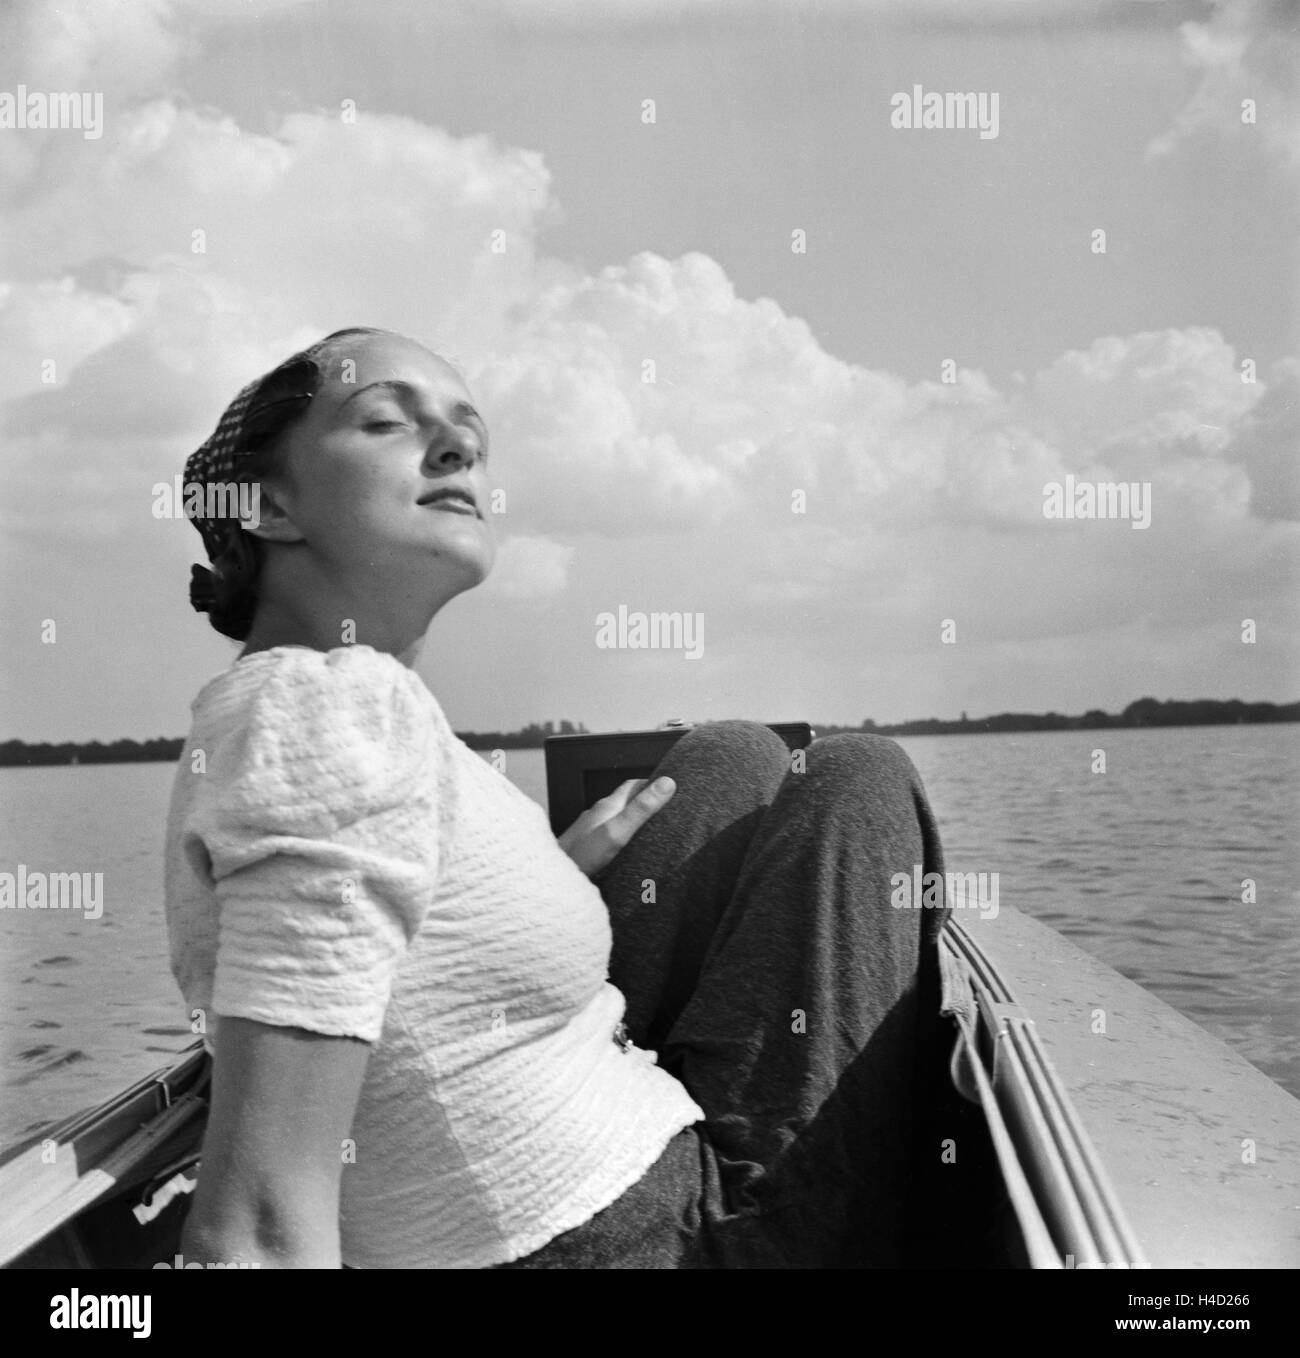 Ein Ausflug mit dem Klepper-Boot, Deutsches Reich 1930er Jahre. An excursion with a foldboat, Germany 1930s. Stock Photo